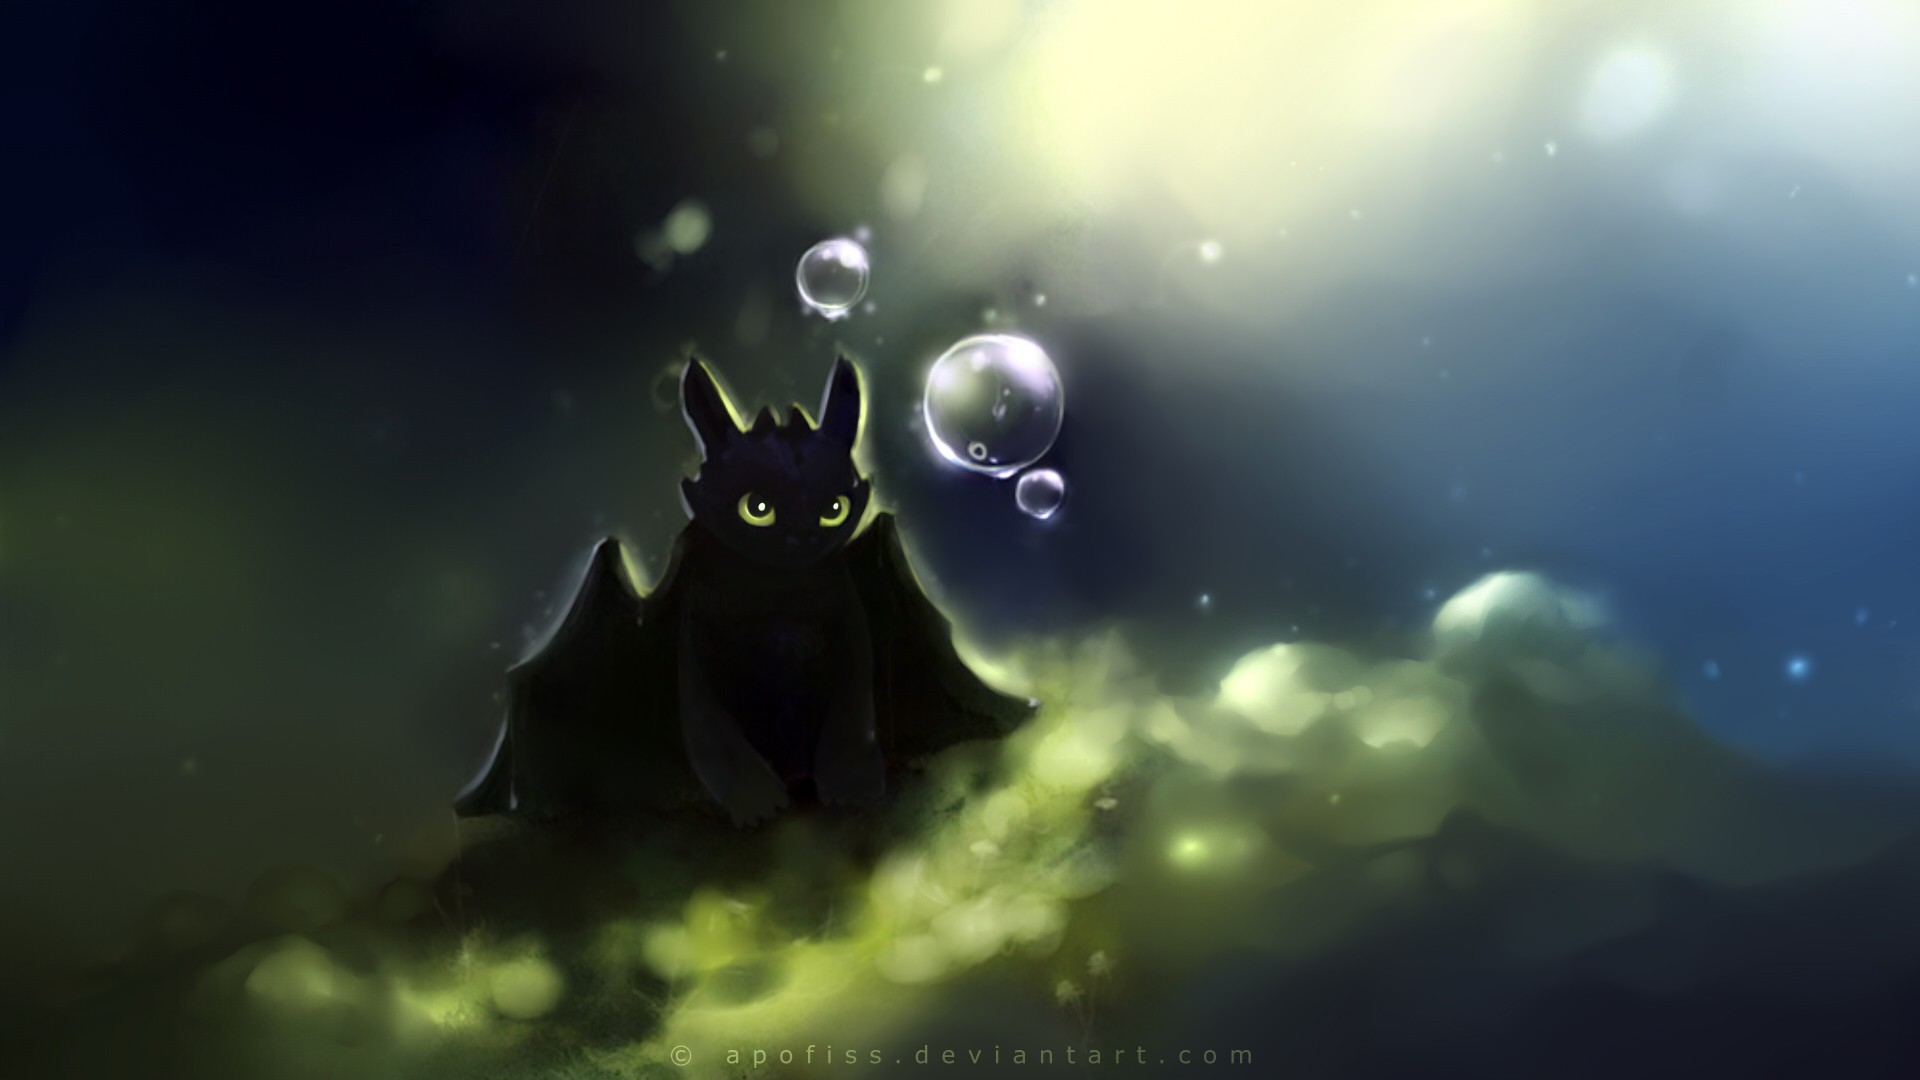 Paper Toothless Wallpaper 1920x1080 Paper Toothless Artwork Apofiss 1920x1080